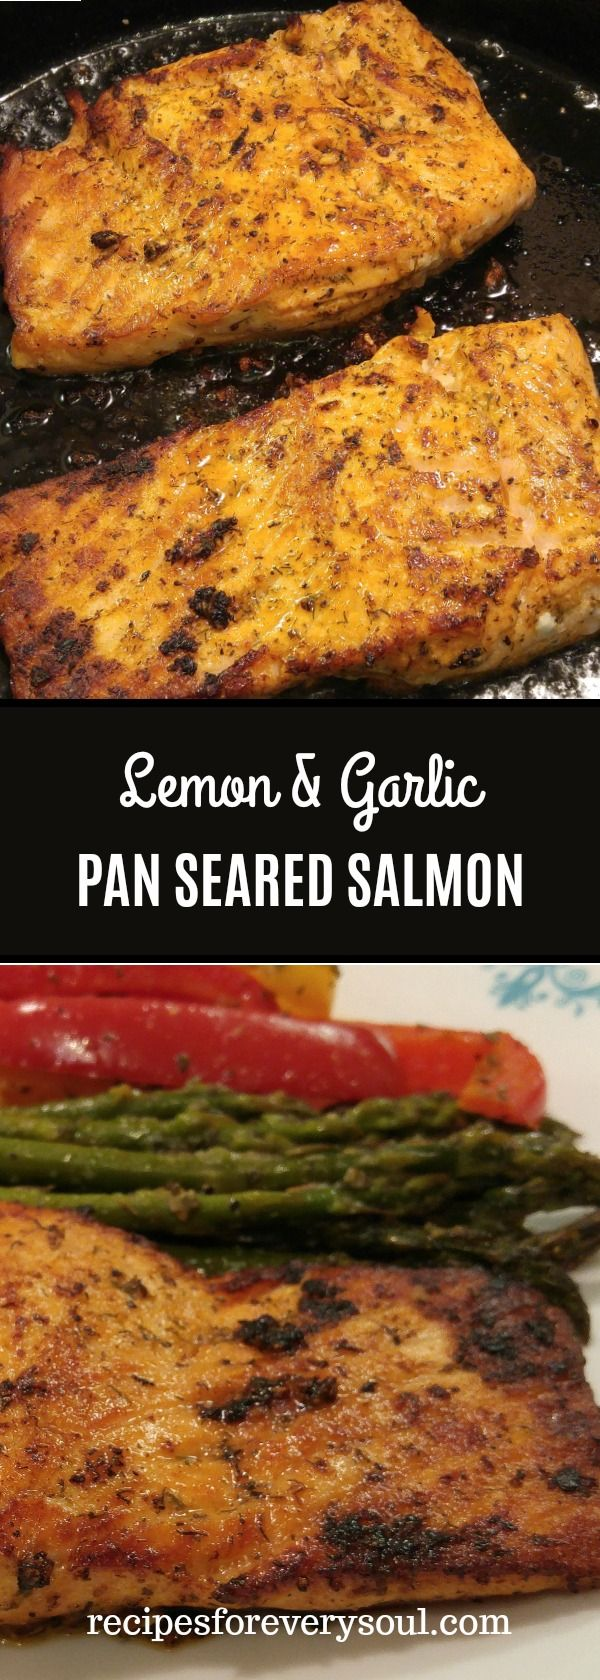 If you are on the hunt to add some variety into your diet but don't want to spend a lot of time cooking, this is the ideal recipe. This pan seared salmon is easy to make and delicious. Enjoy this with vegetables and rice!